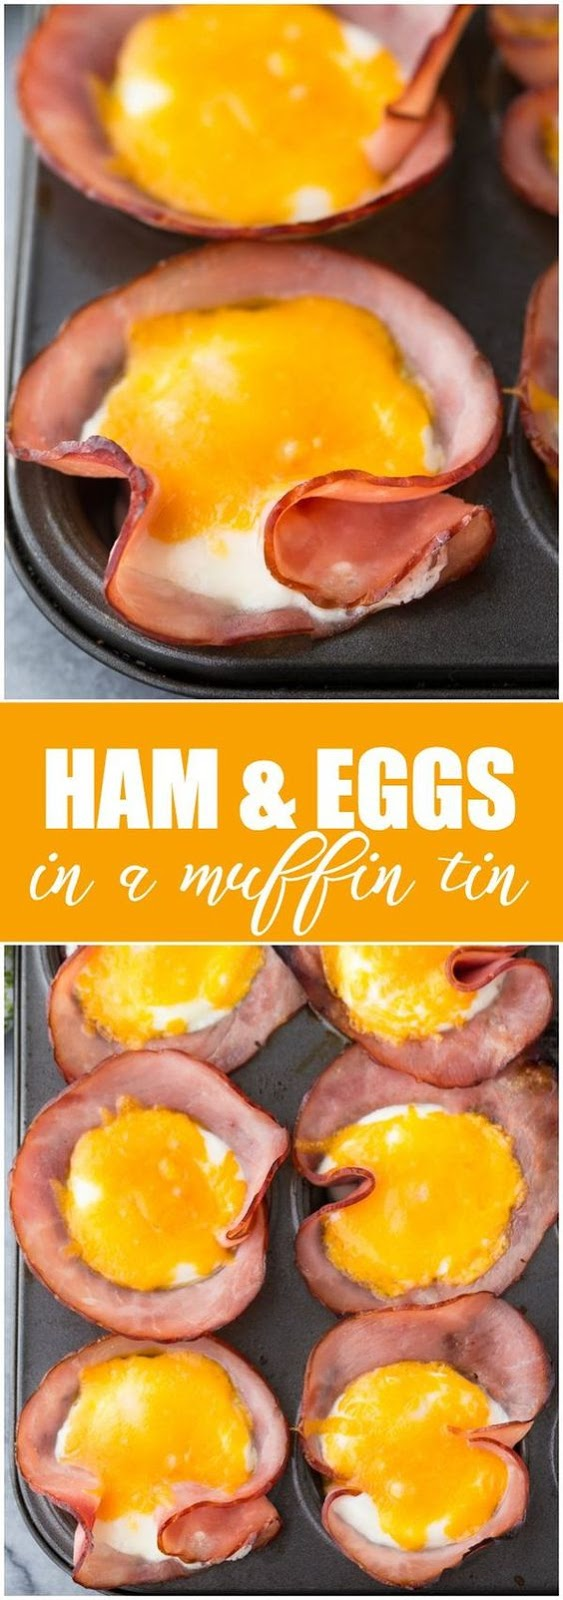 Ham & Eggs in a Muffin Tin